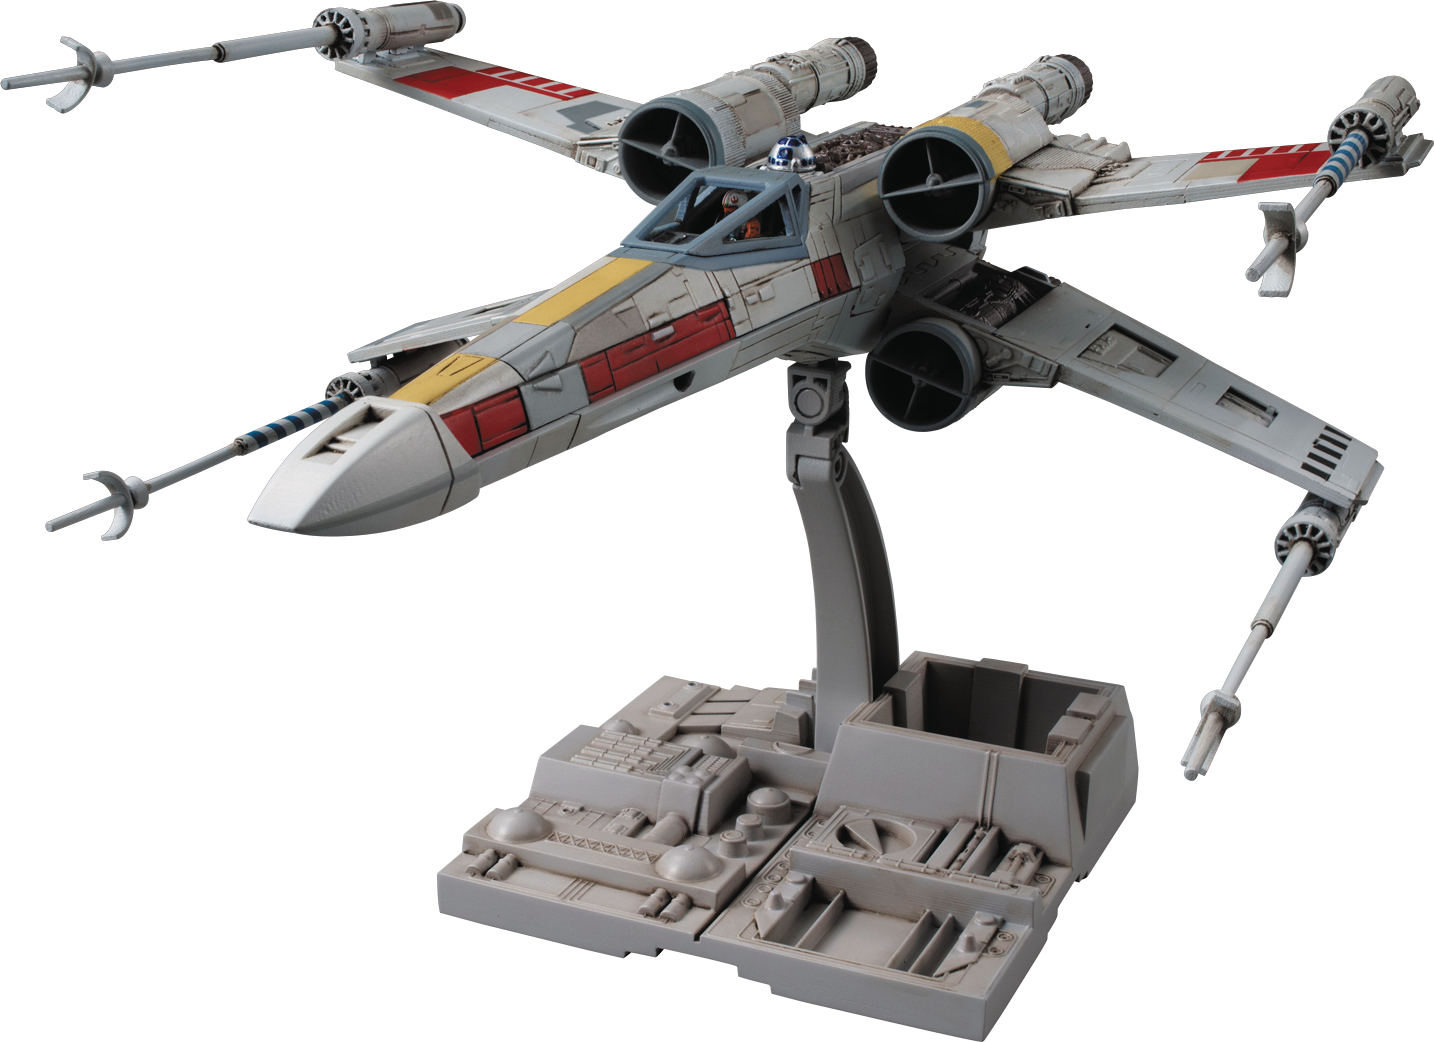 STAR WARS X-WING STAR FIGHTER 1/72 MDL KIT